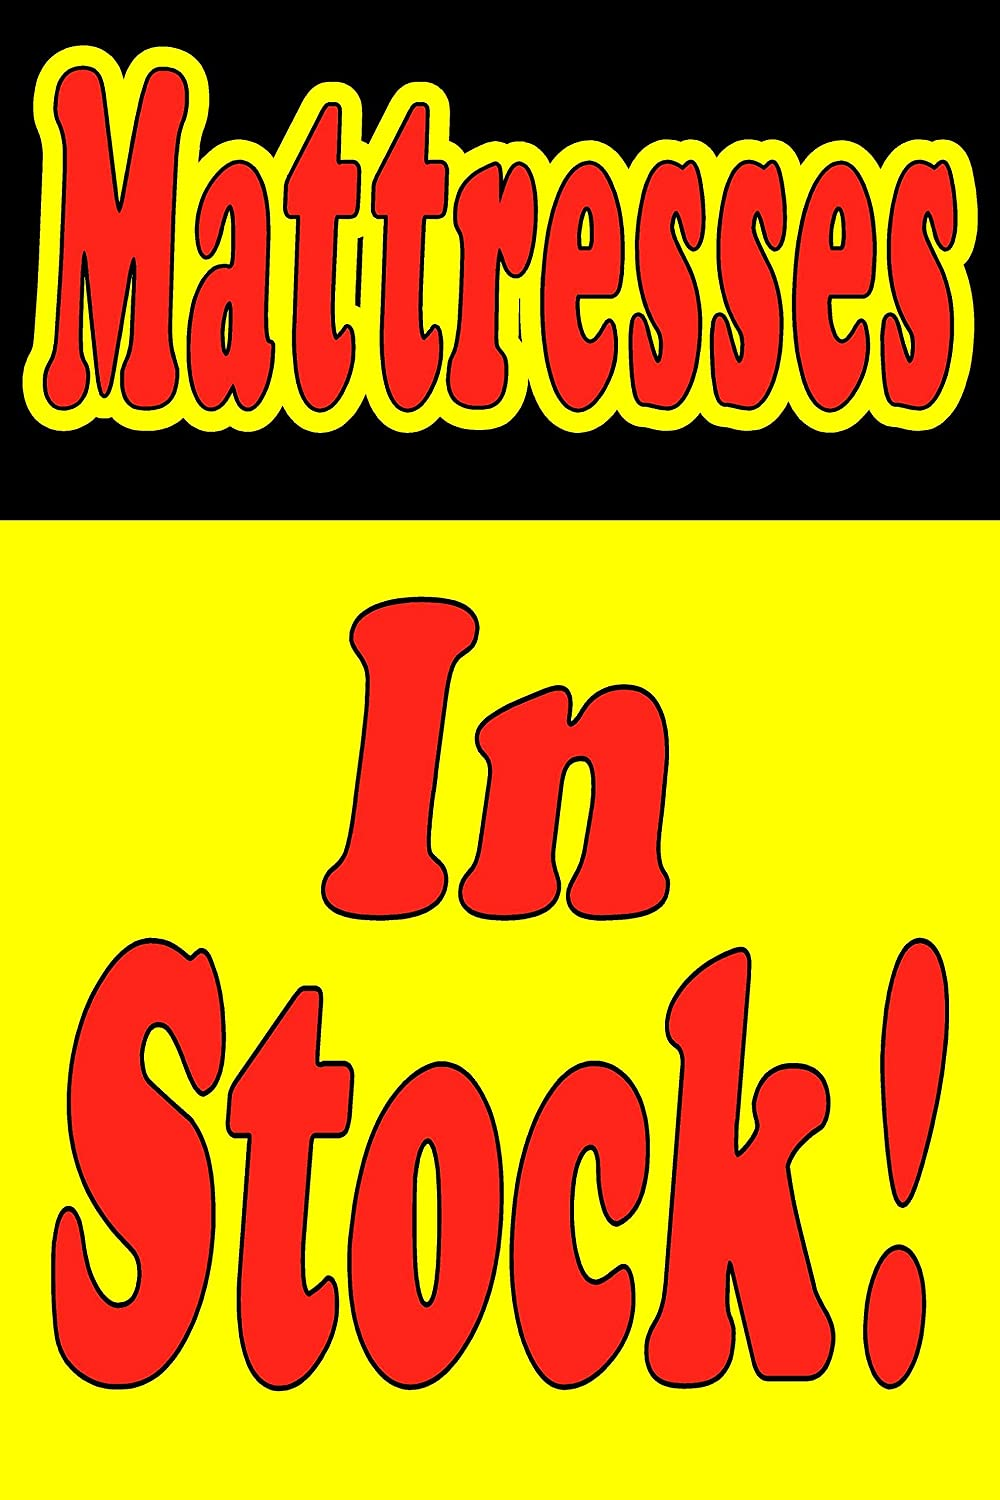 Paper Window Wall Advertising Sign 24X36 MATTRESSES In Stock FURNITURE STORE